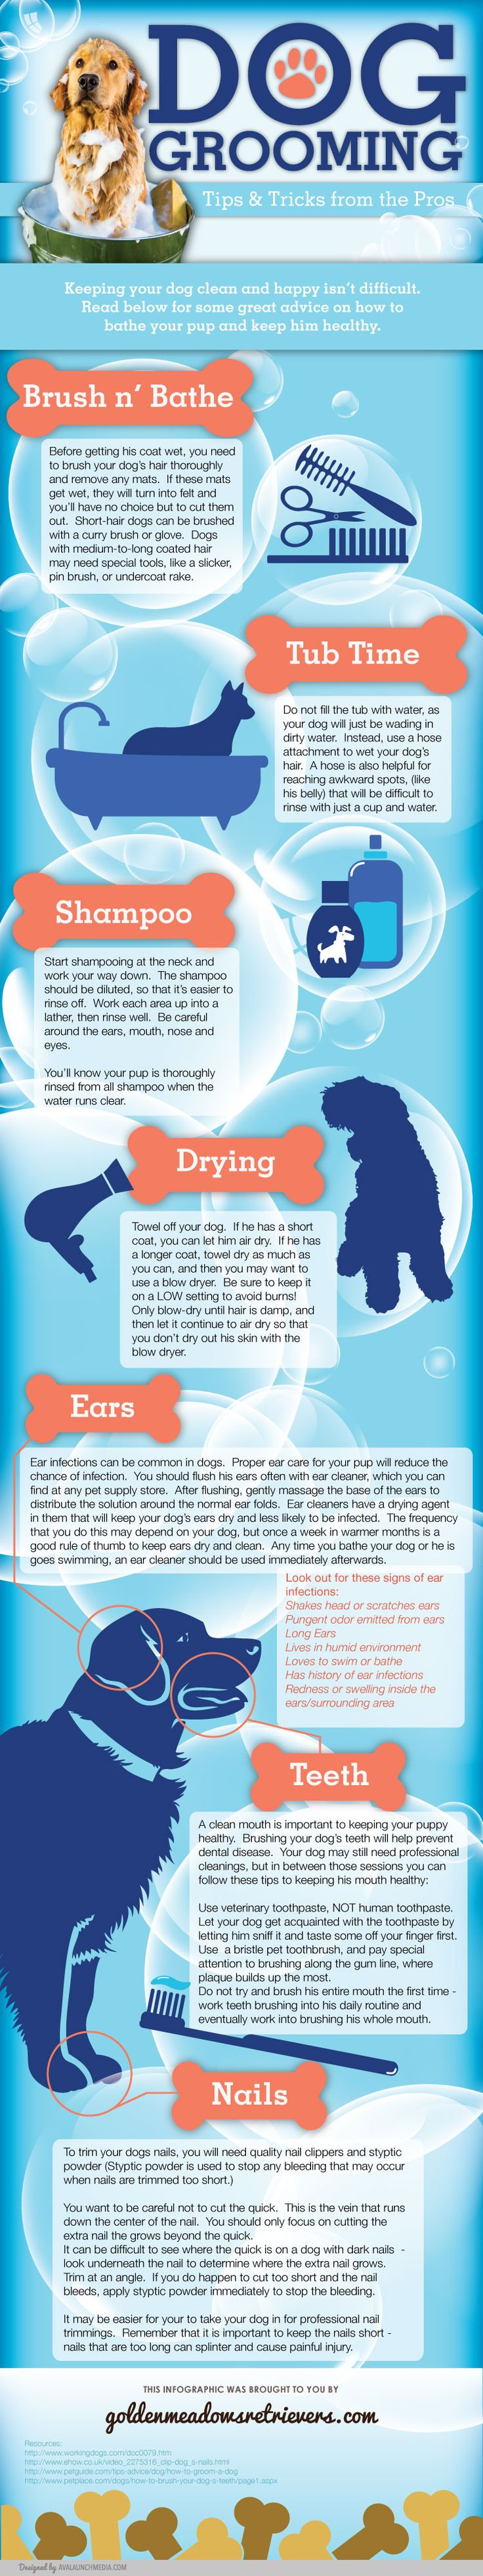 Tips and Tricks from the Pros for Grooming Your Furry Friend! #kimmie1980ca